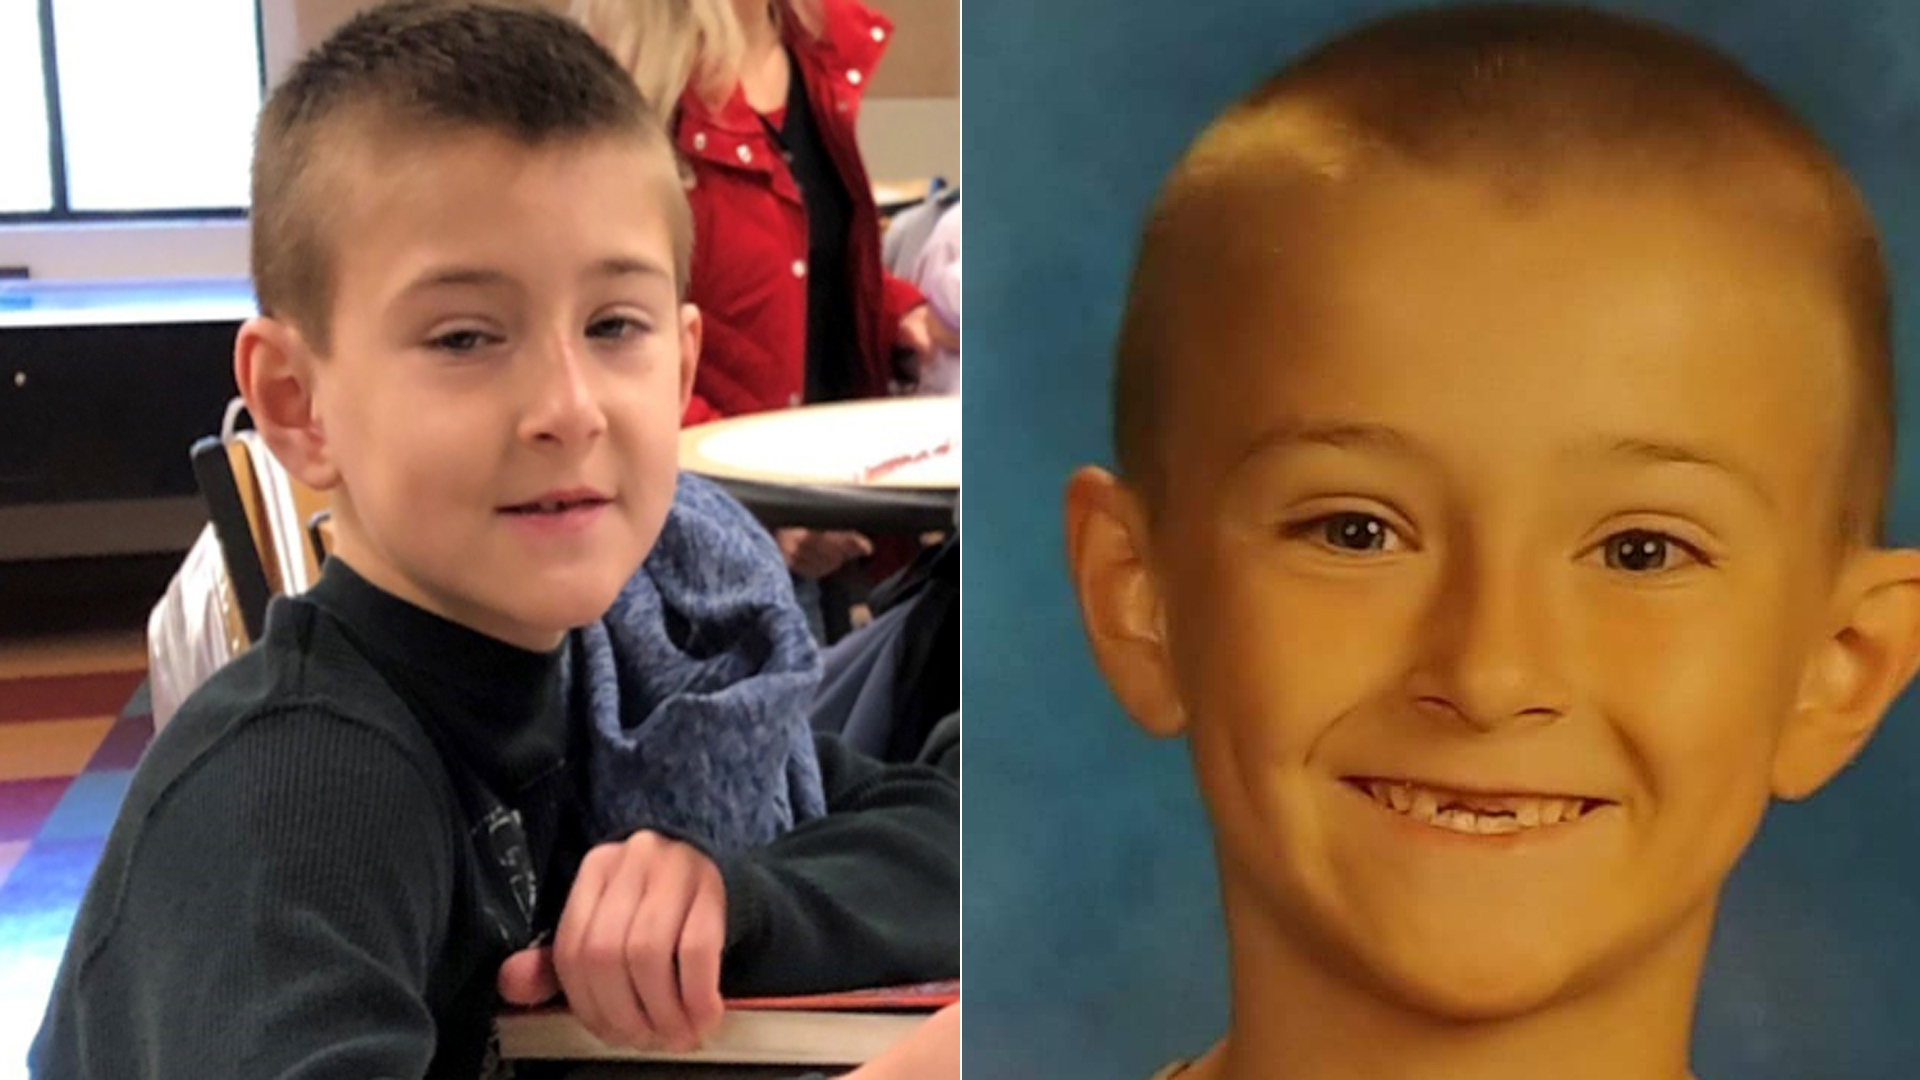 Noah McIntosh is seen in a photo released by Corona police, left, and in a photo provided by his family to KTLA.